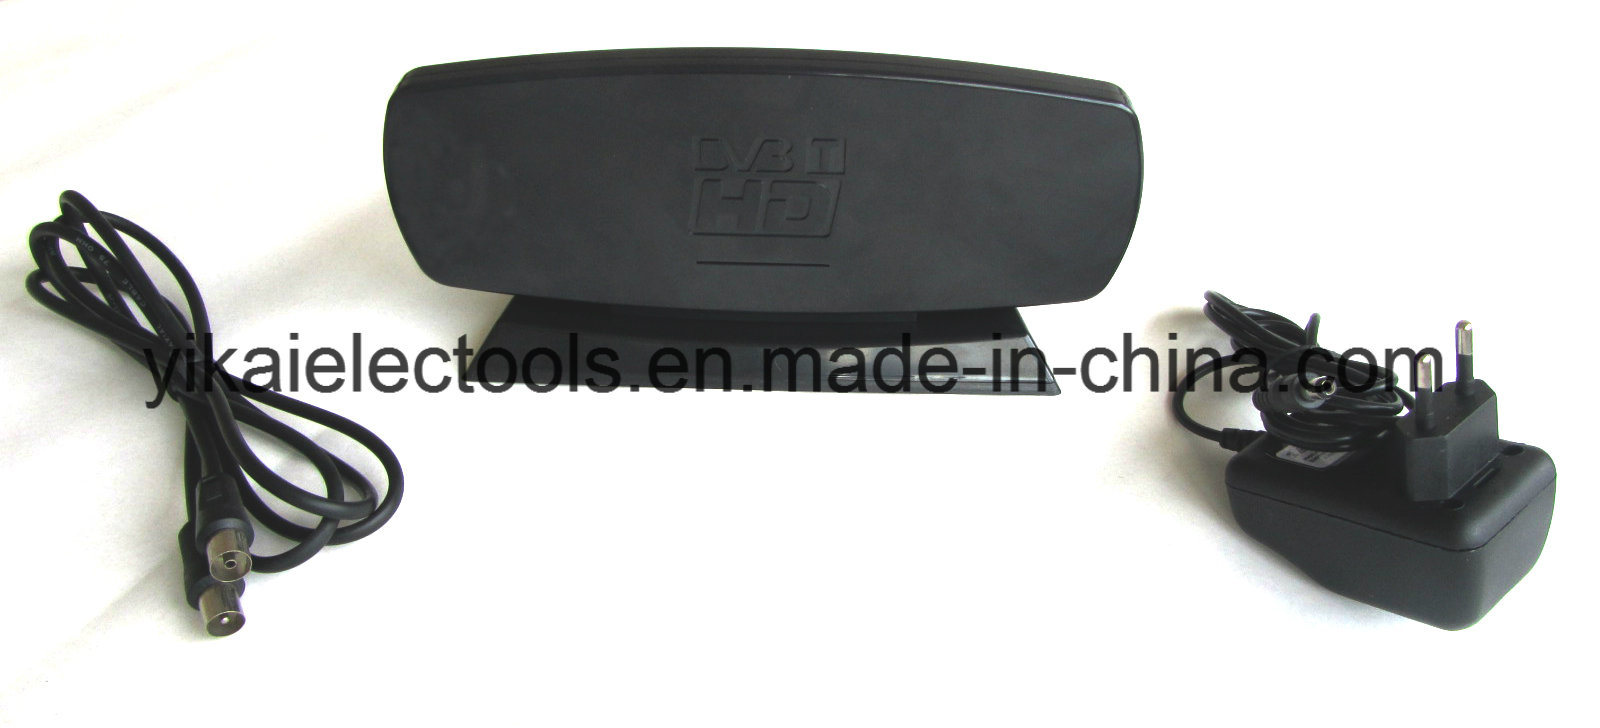 HD Digital Antenna DVB-T Antenna